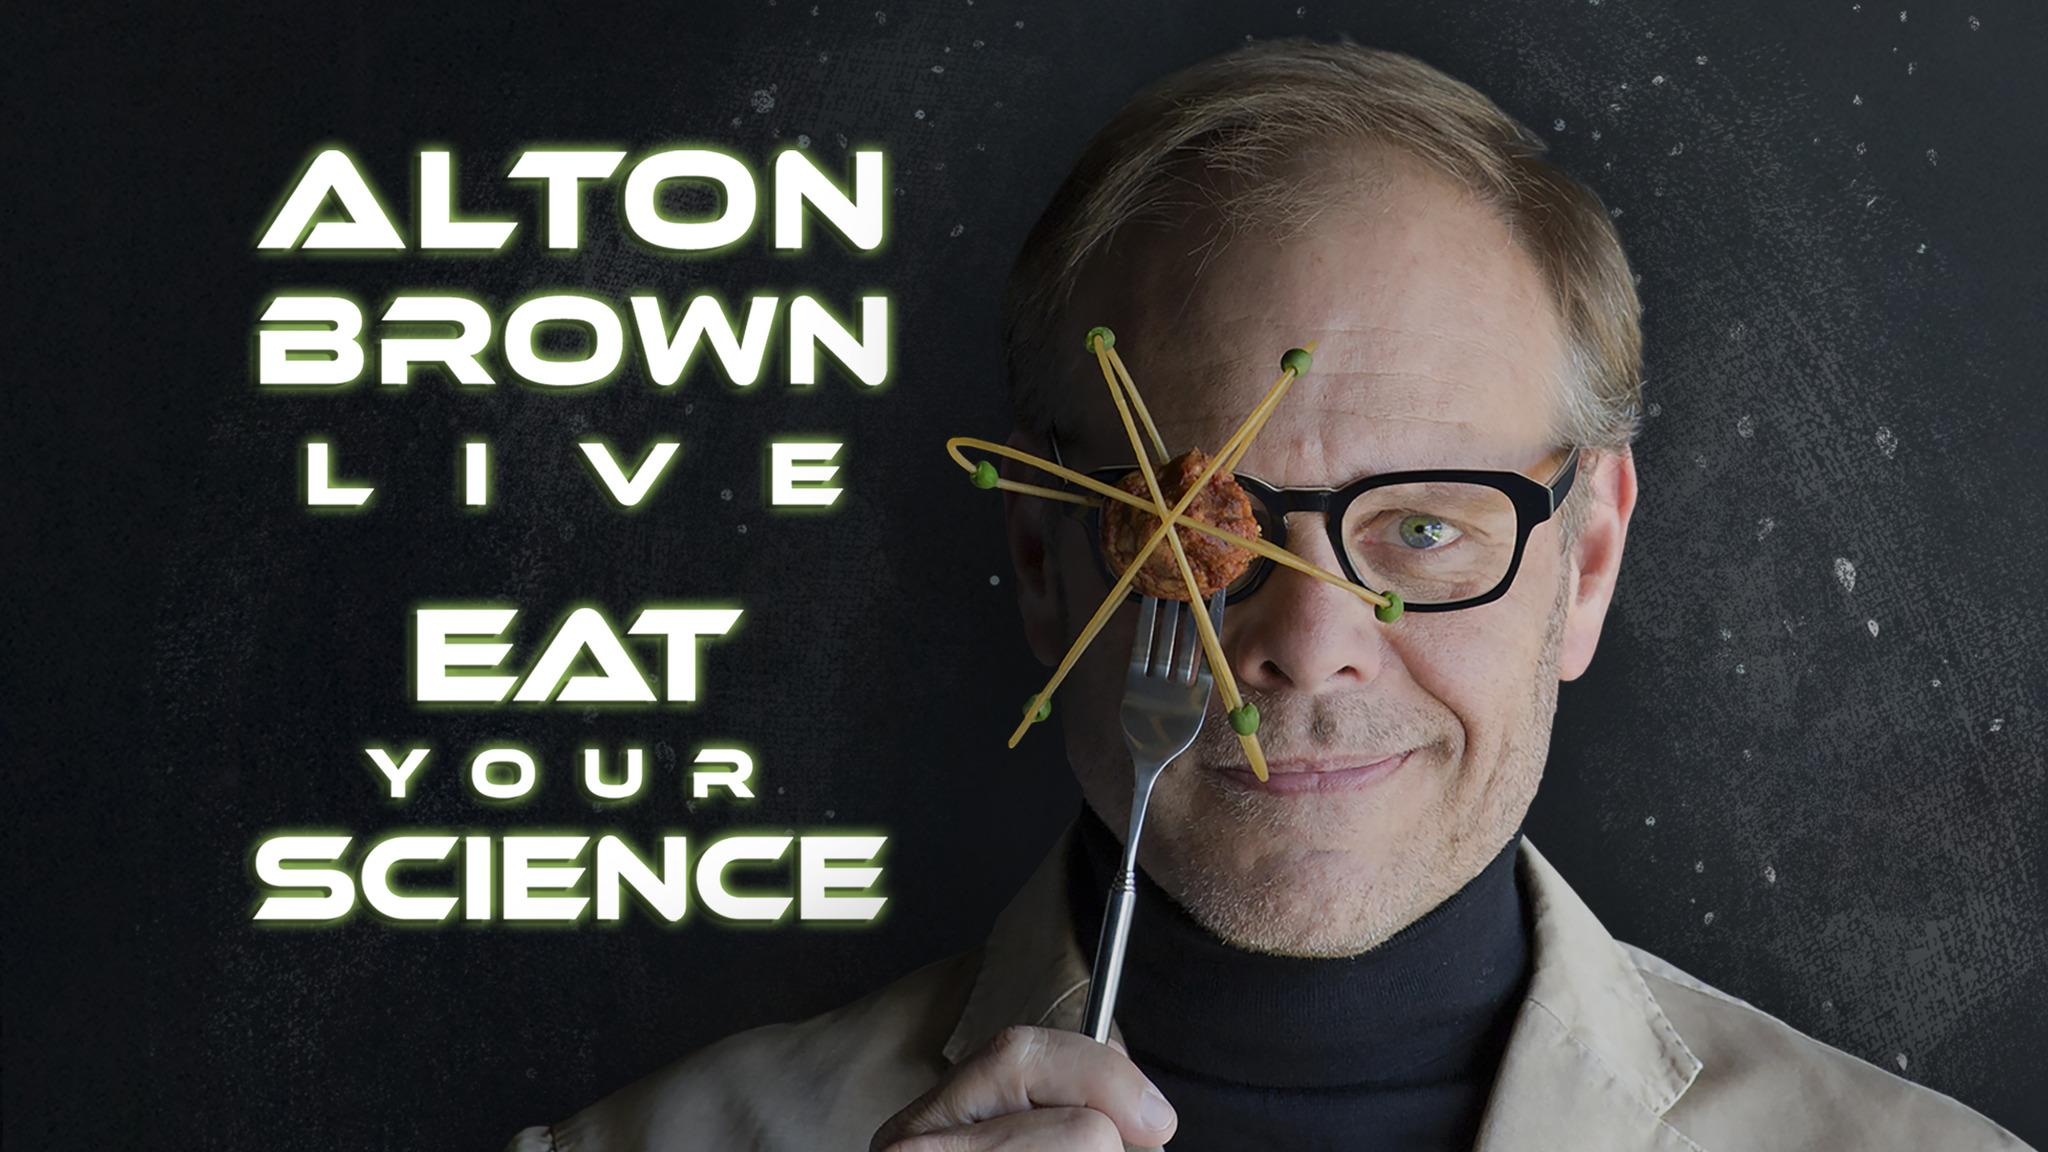 Alton Brown at Arlington Theatre